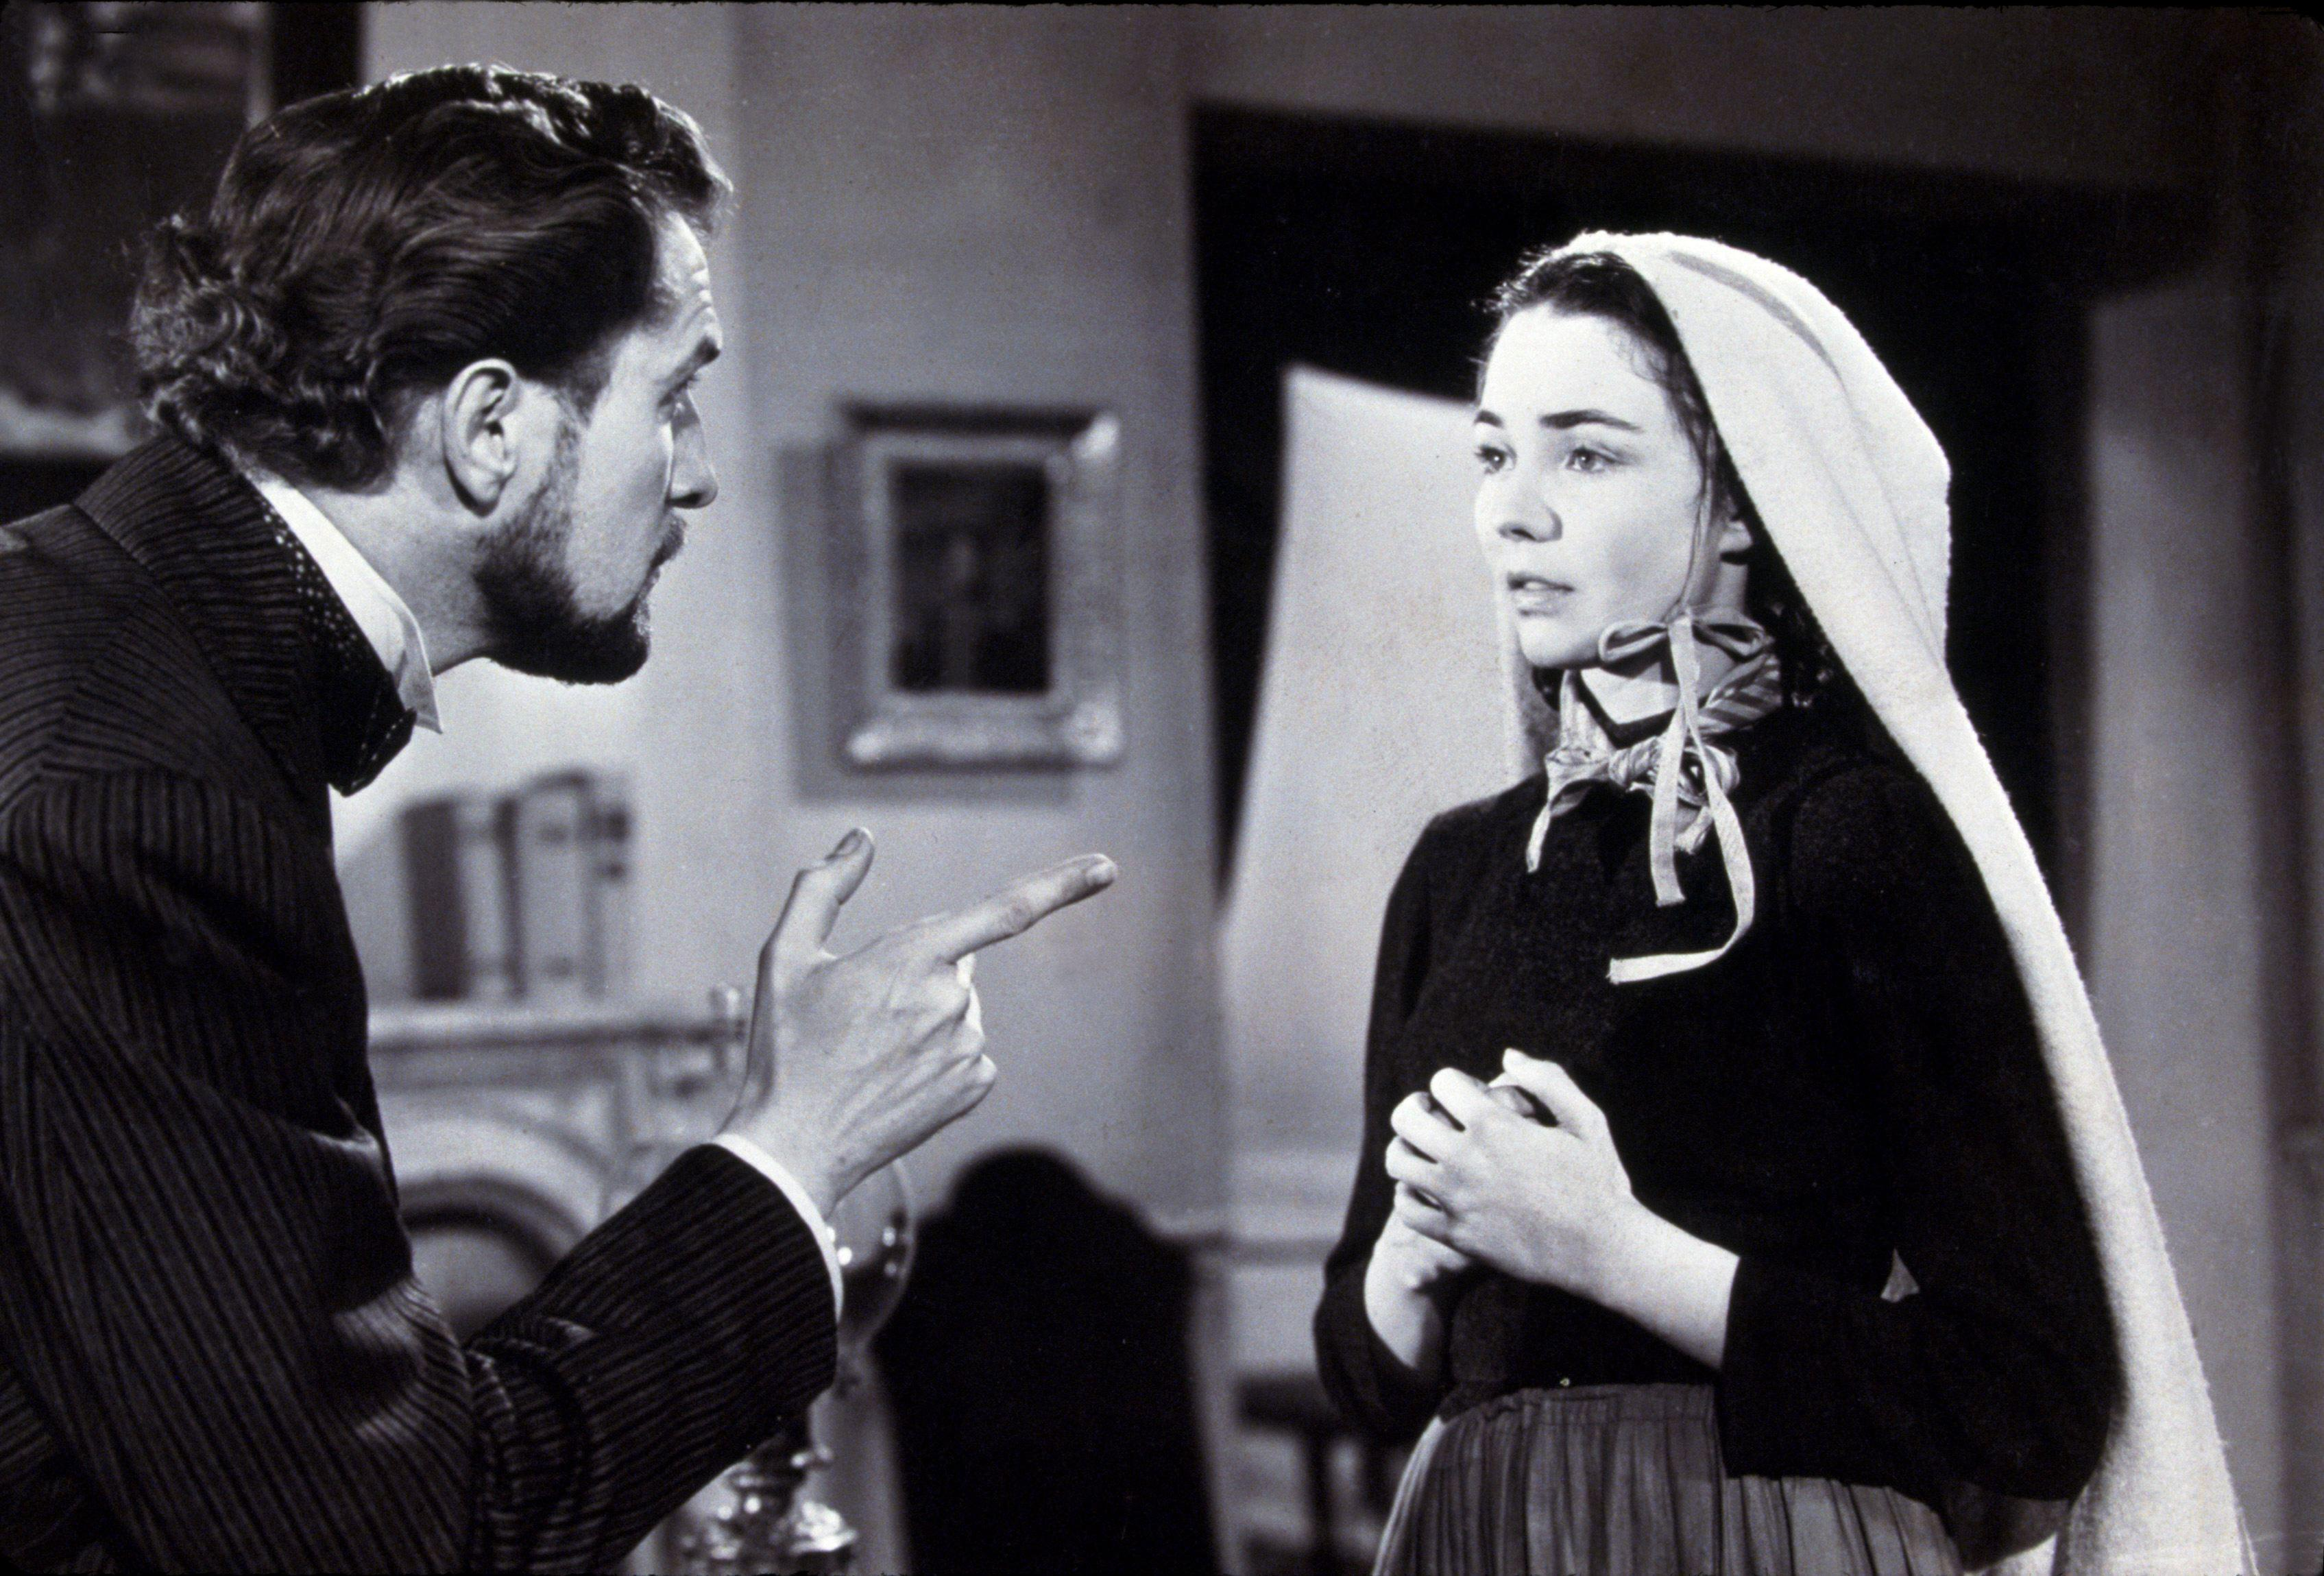 A 1940s French film is one of the most Catholic horror